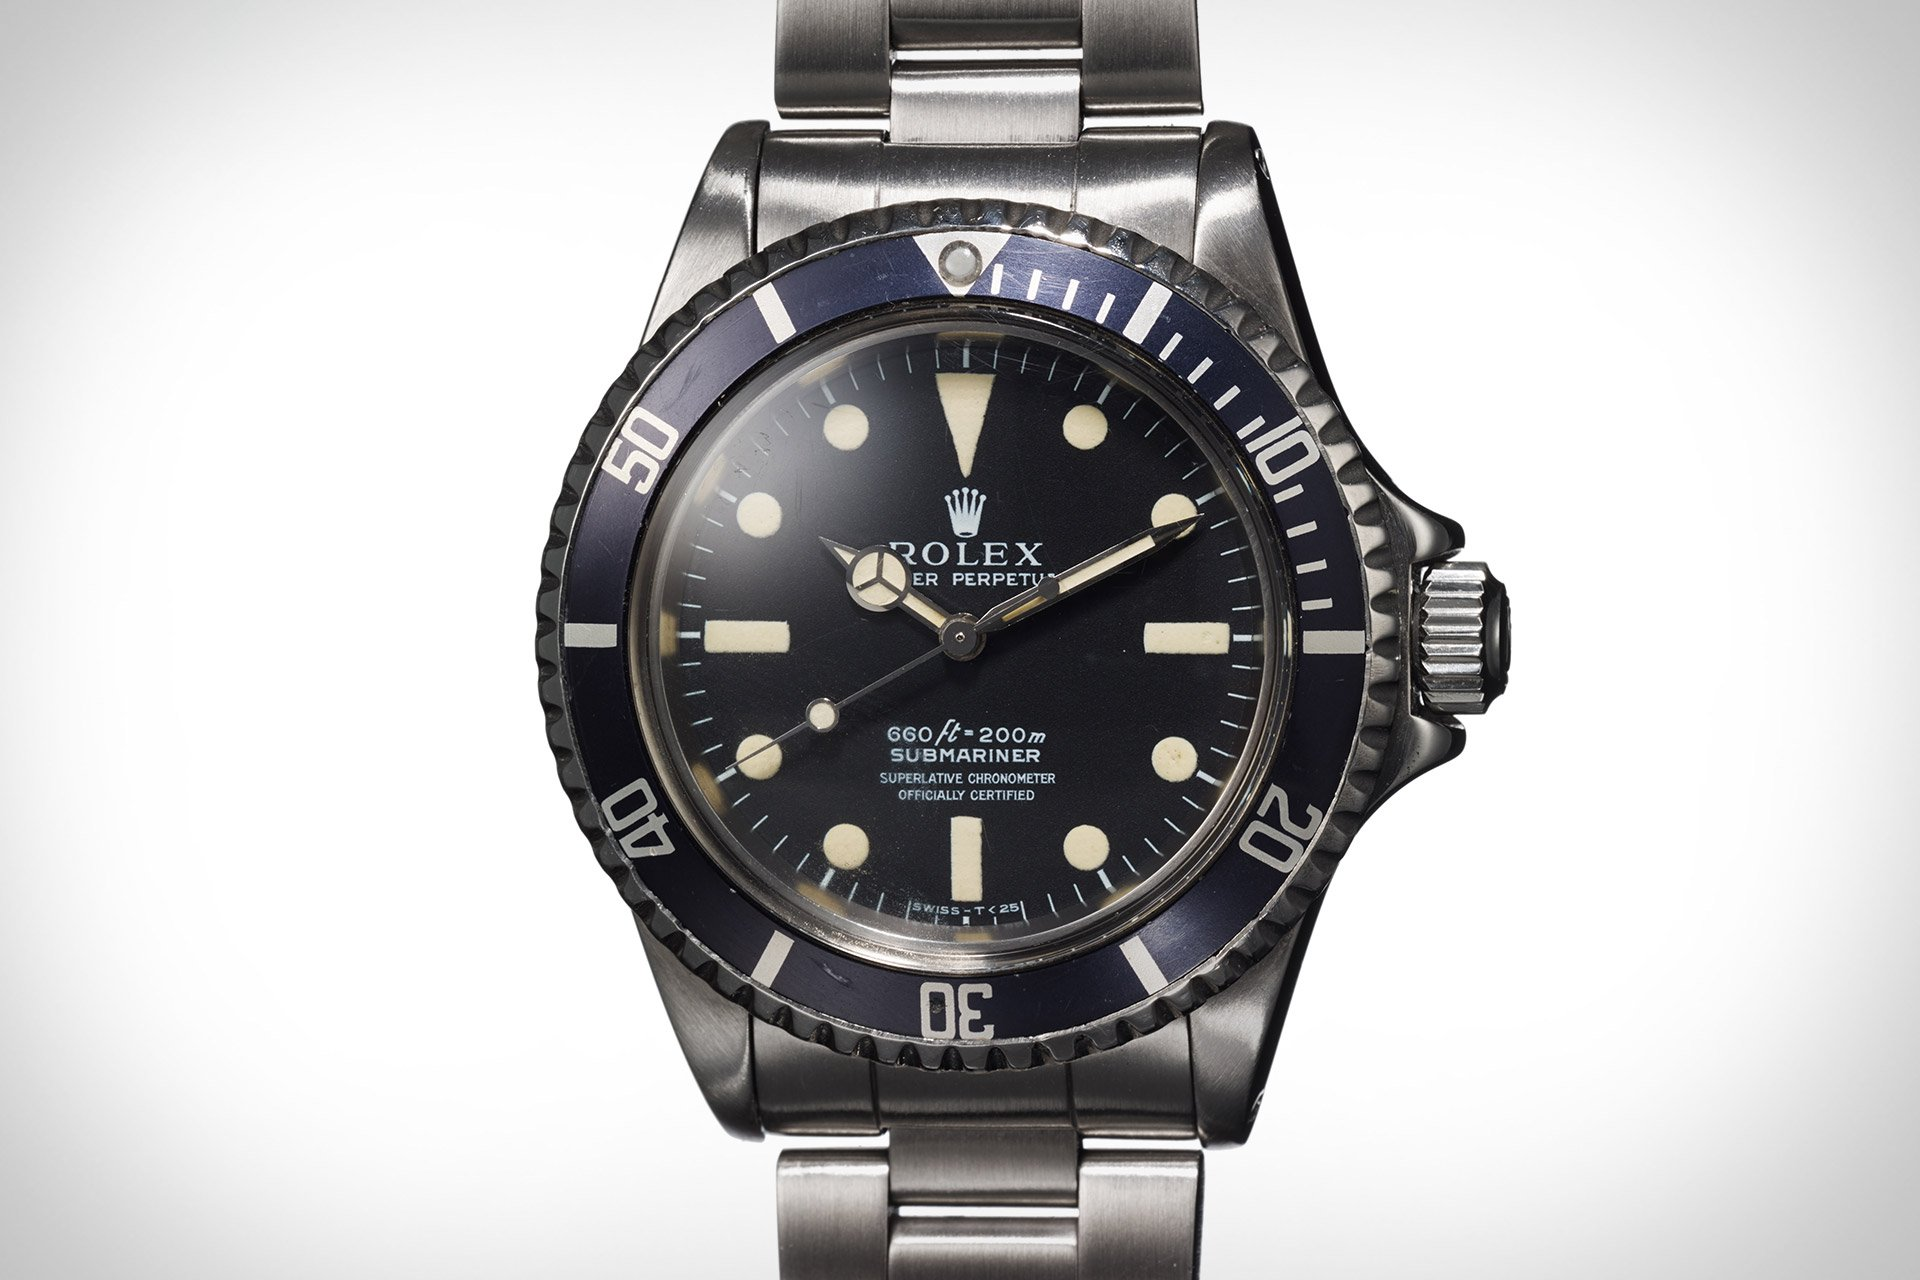 The Steve McQueen Submariner gifted to Loren Janes was pulled from the auction